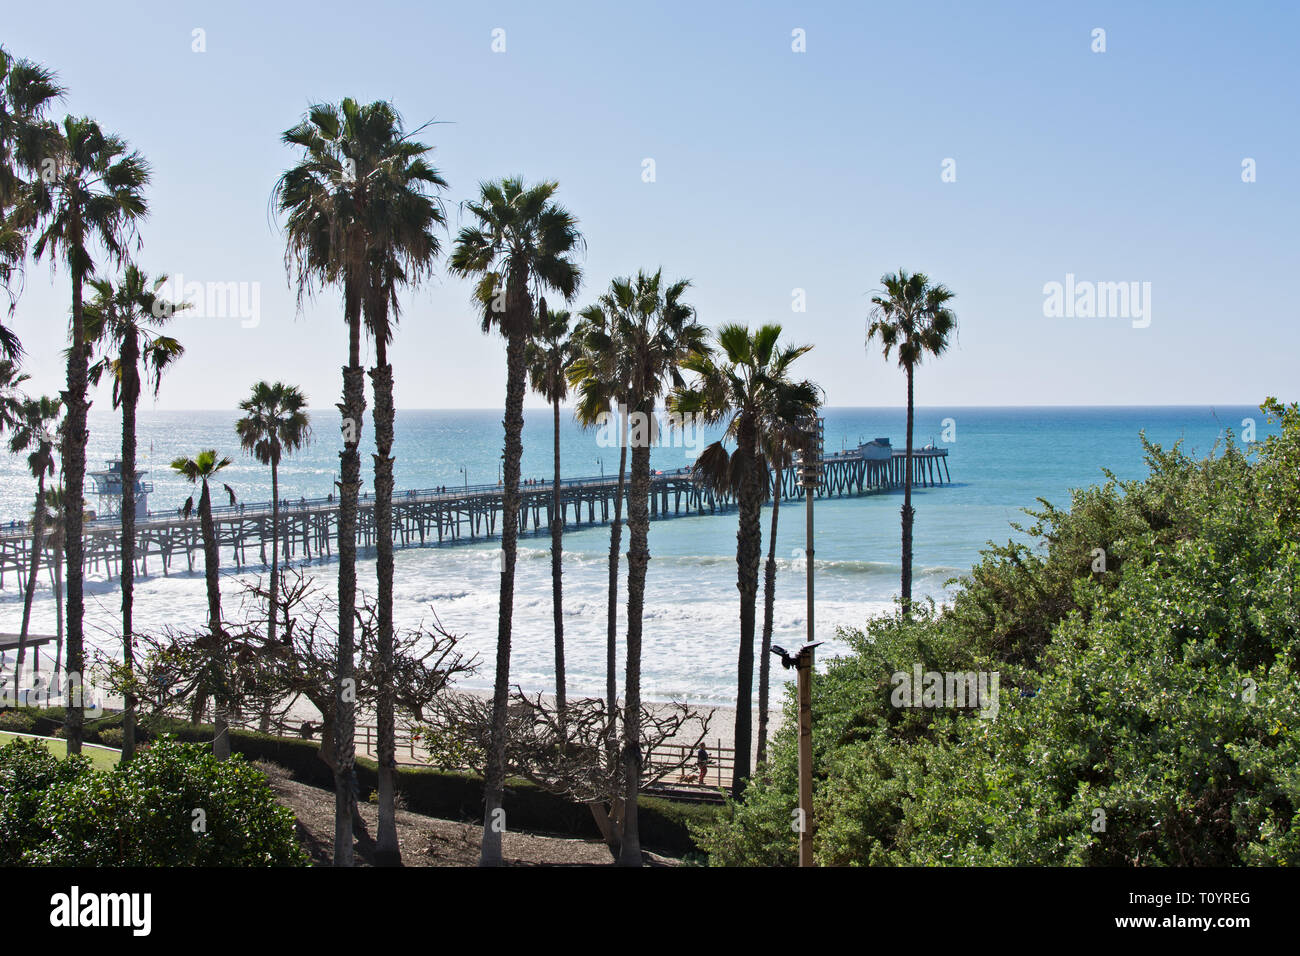 The image shows the pier during the day with palm trees seen from Parque Del Mar. It was built in 1928 with a length of about 395 meters. Stock Photo